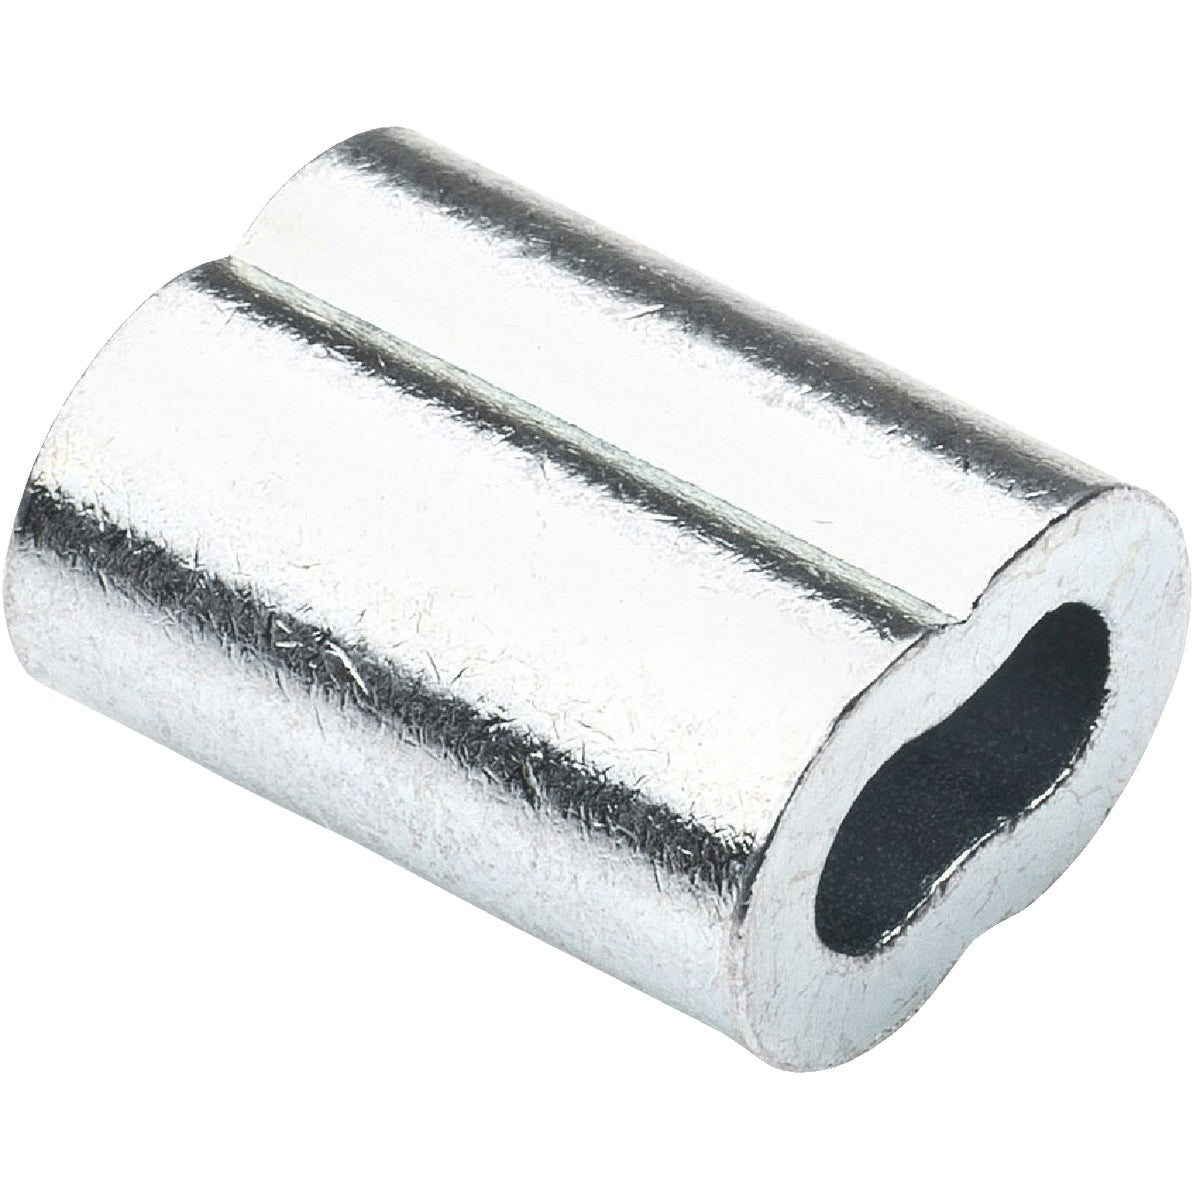 50PK 3/16 CABLE FERRULE - 7670744 by Cooper Campbell Apex